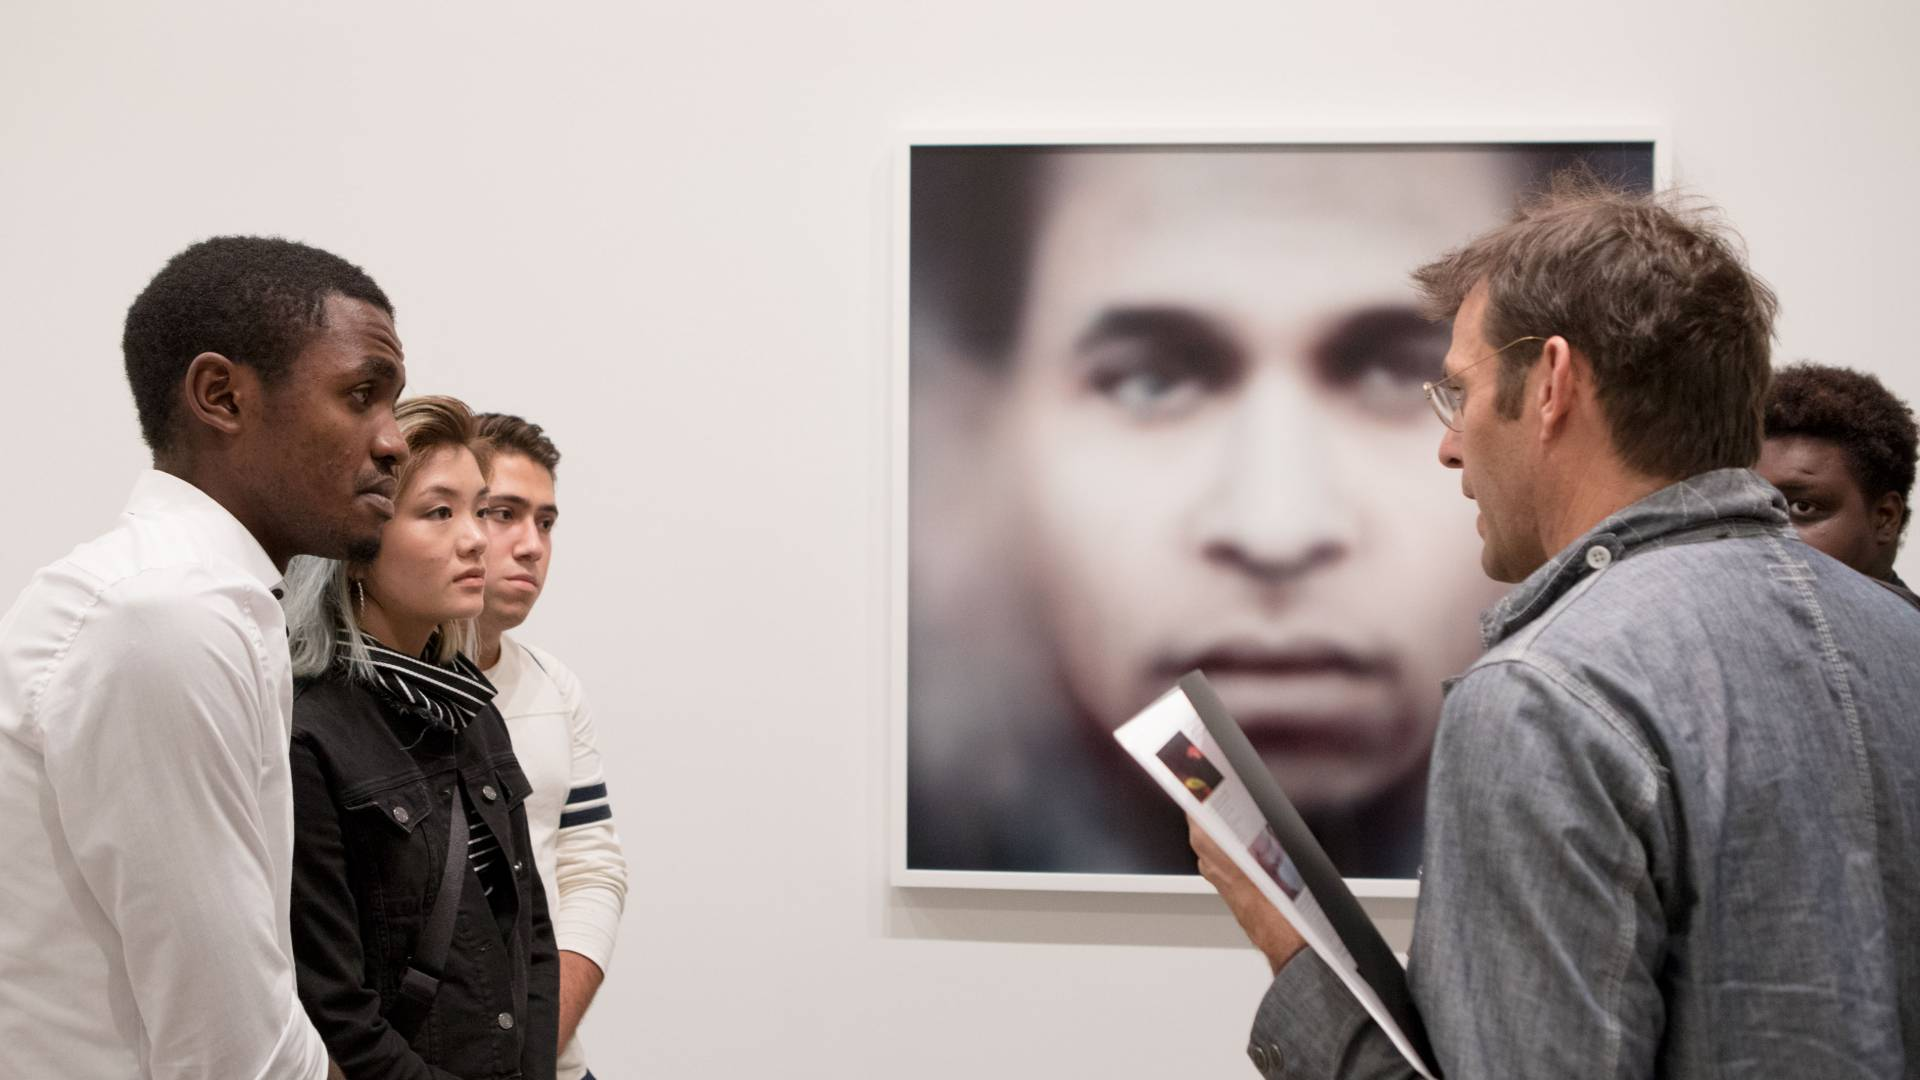 Professor Whetstone discusses photo with students at New York gallery